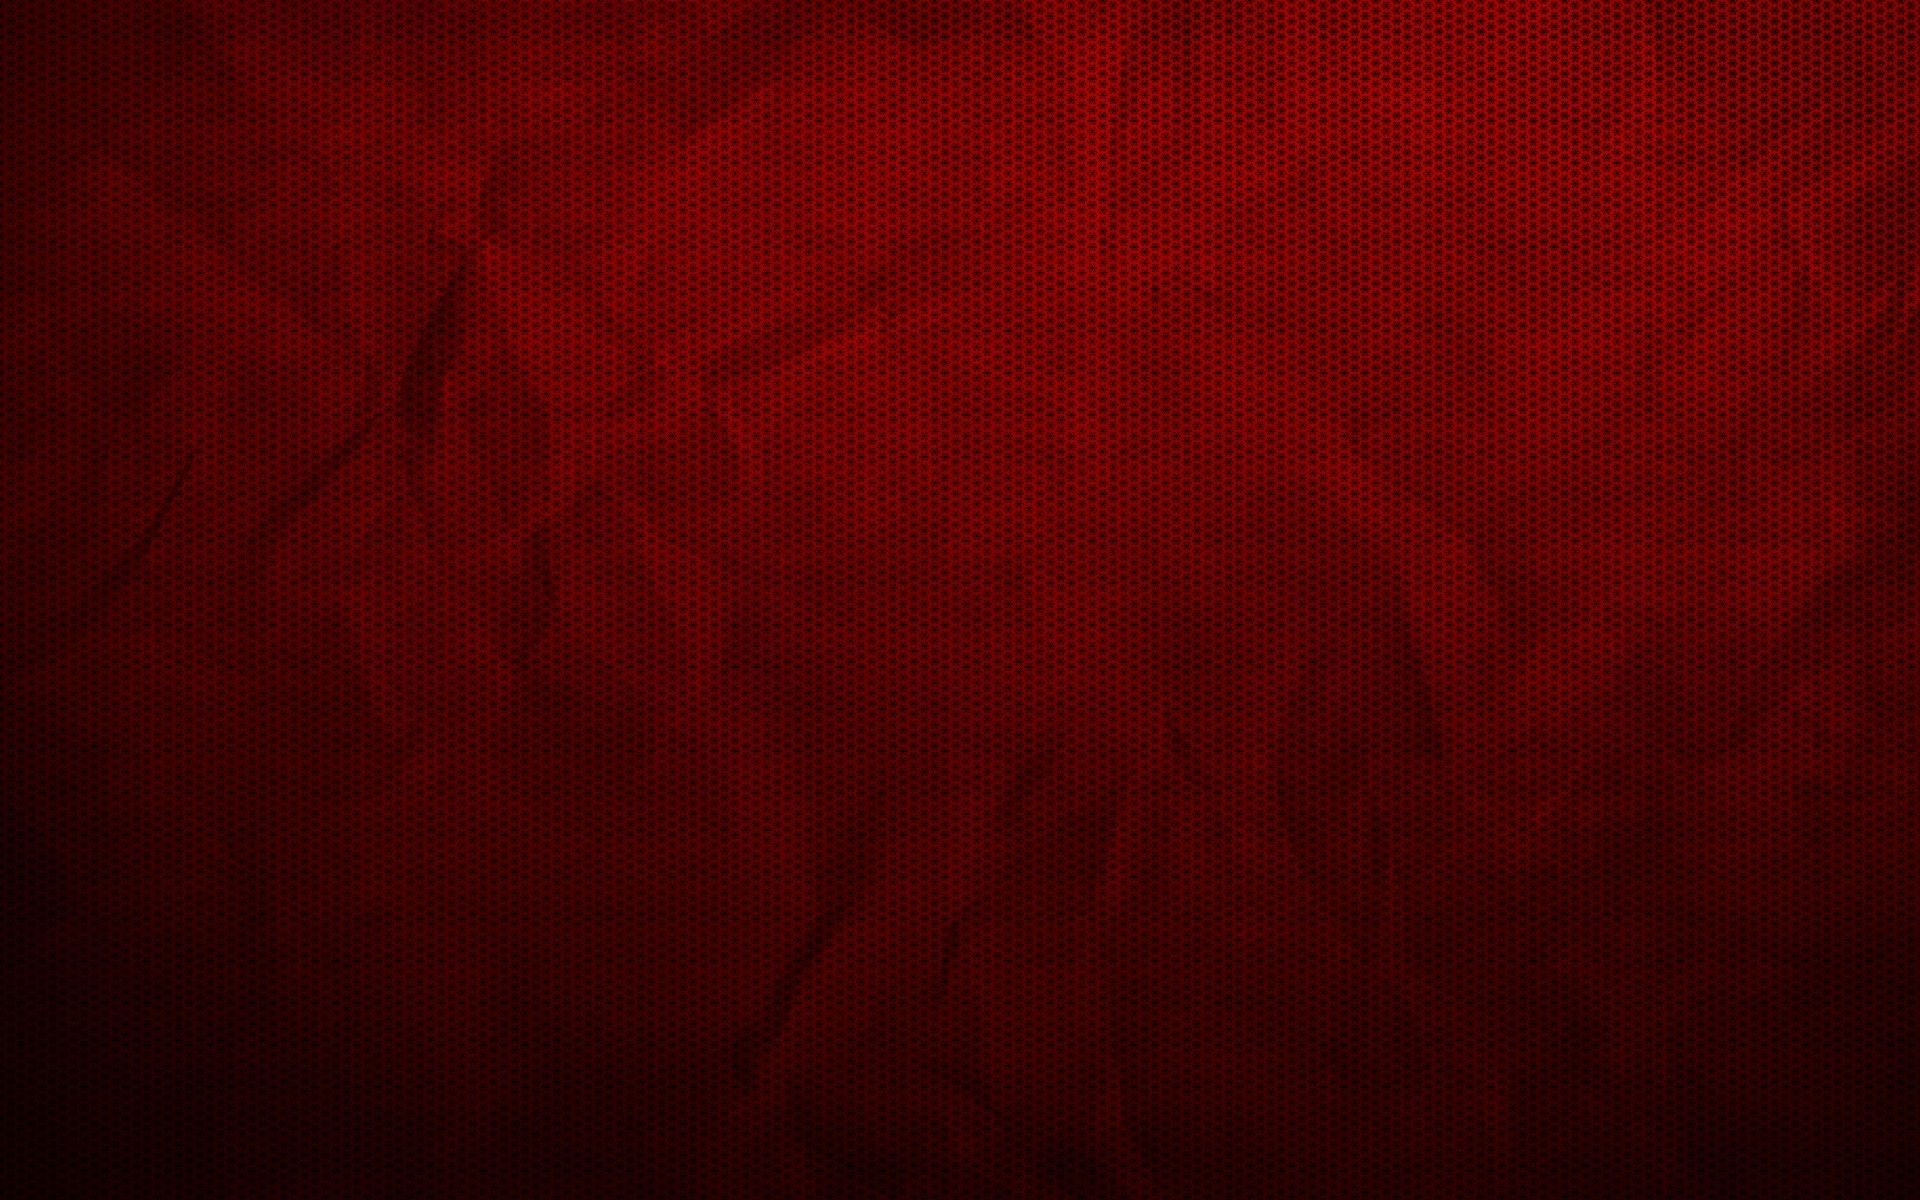 Red Black Maroon Free Background Image With Images Free